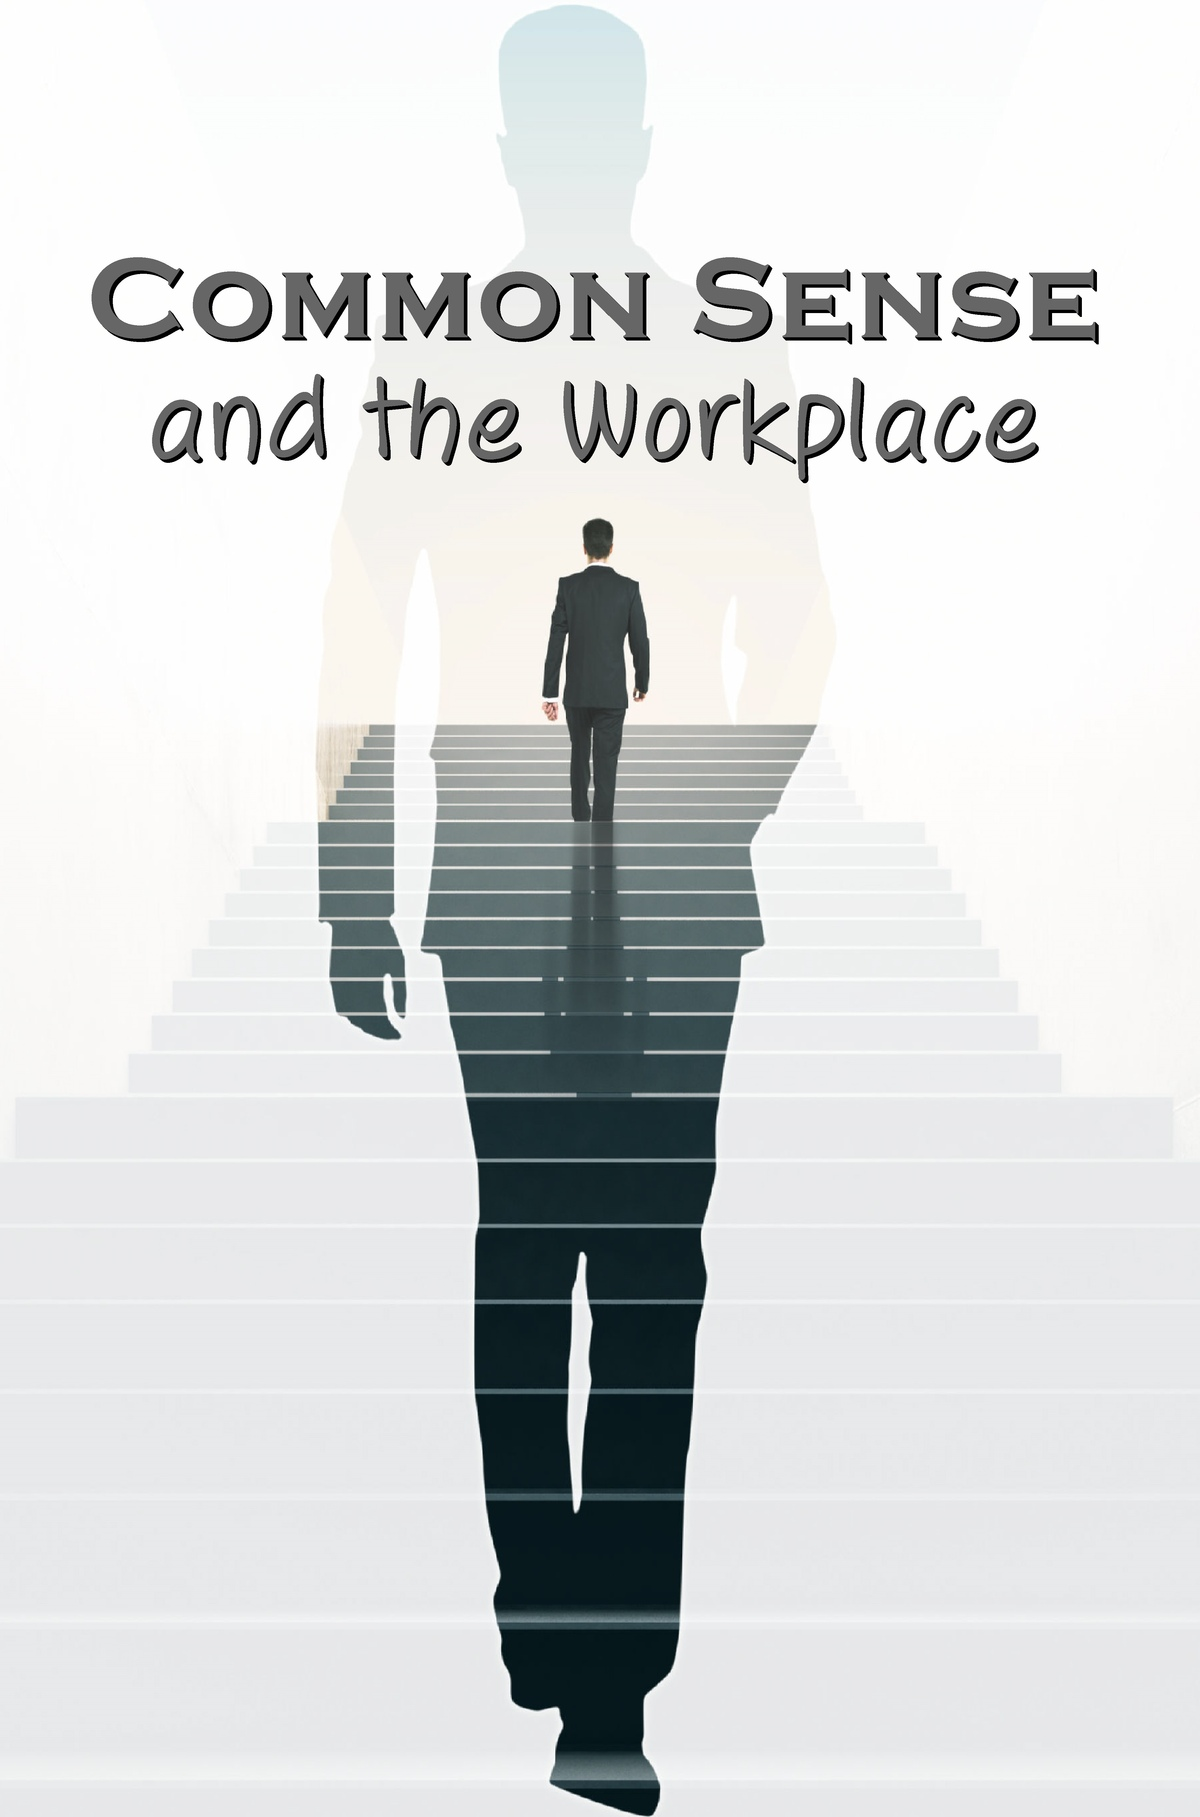 L7002 - Common Sense and the Workplace